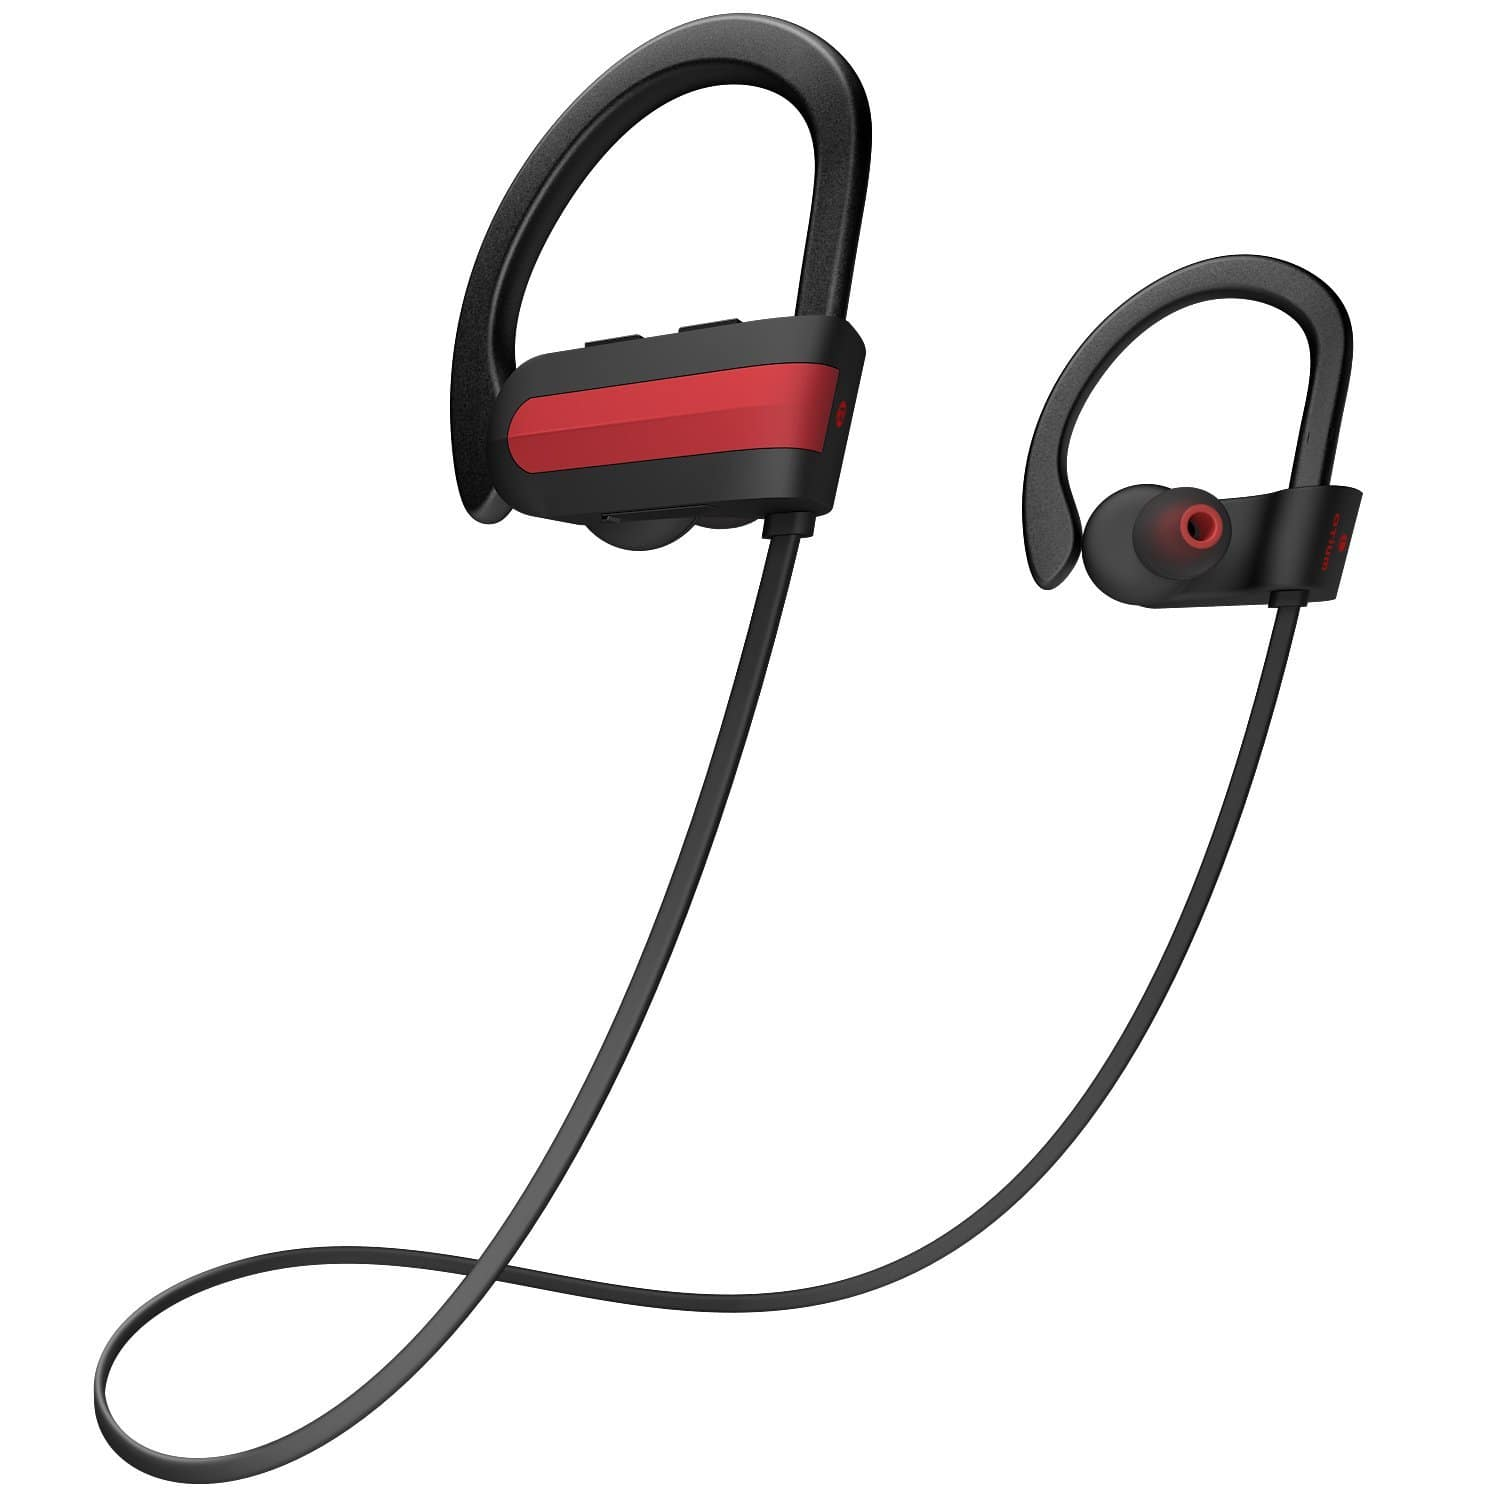 Otium Bluetooth Water Resistant Sport Earbuds $11.79 w/ possible FS @ Amazon